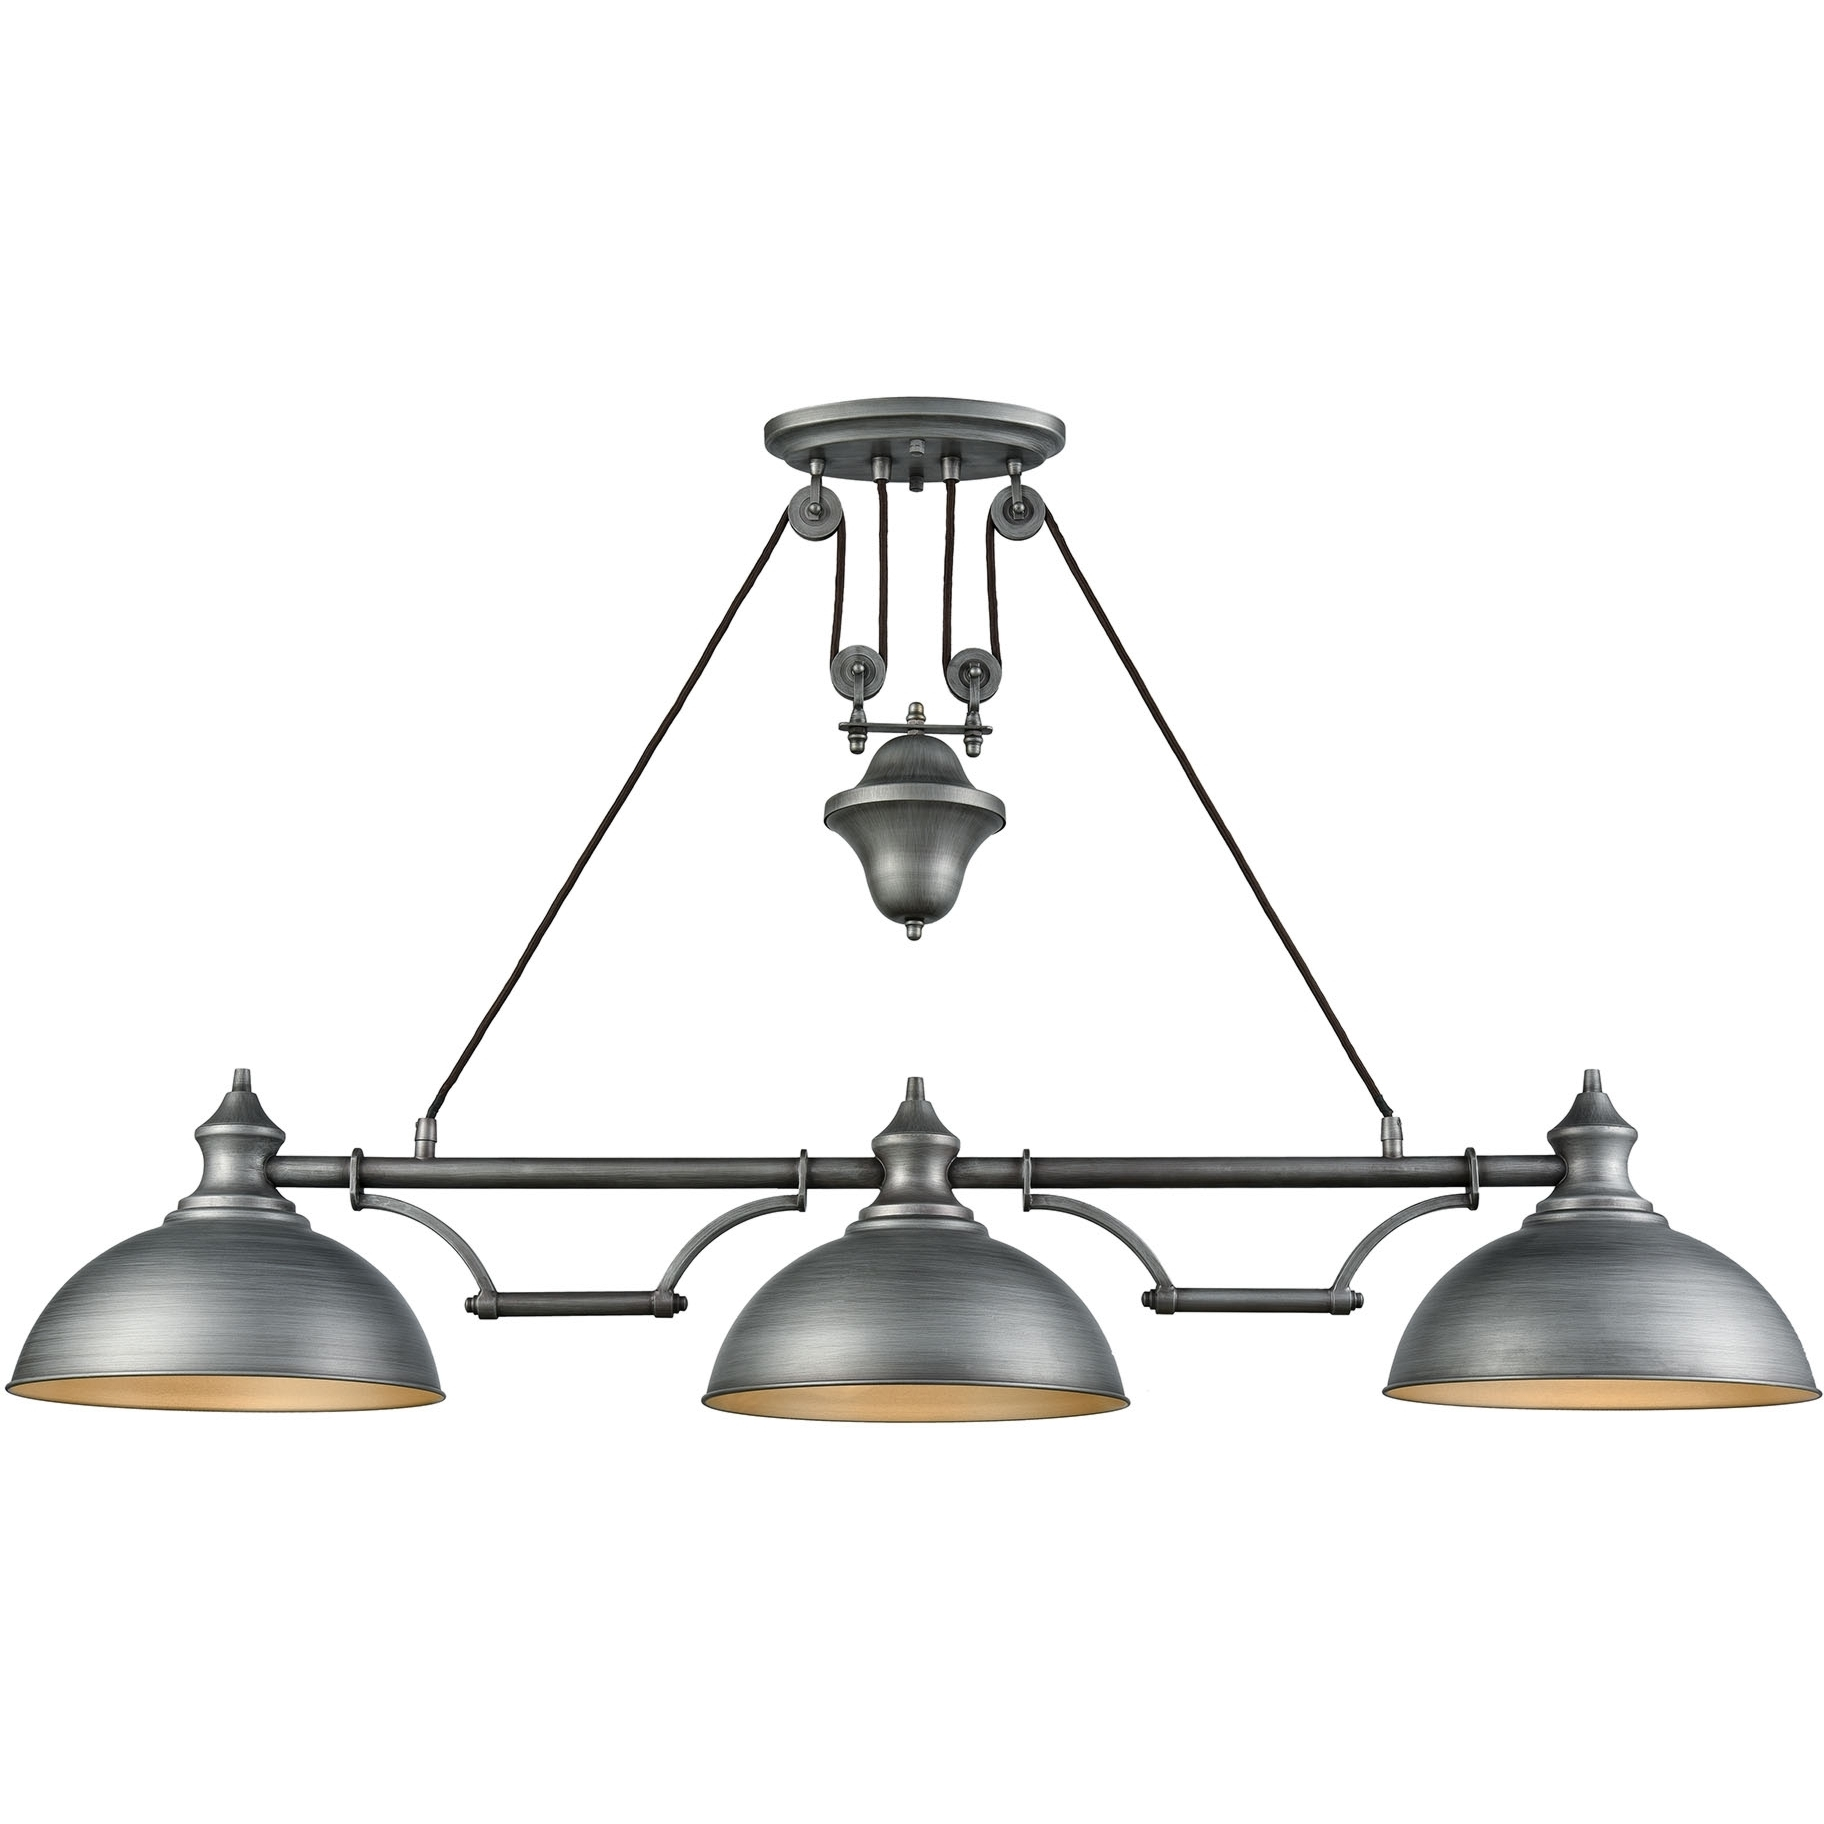 Elk Lighting Modern Farmhouse: ELK Lighting 65163-3 Farmhouse 3 Light Pulldown Island